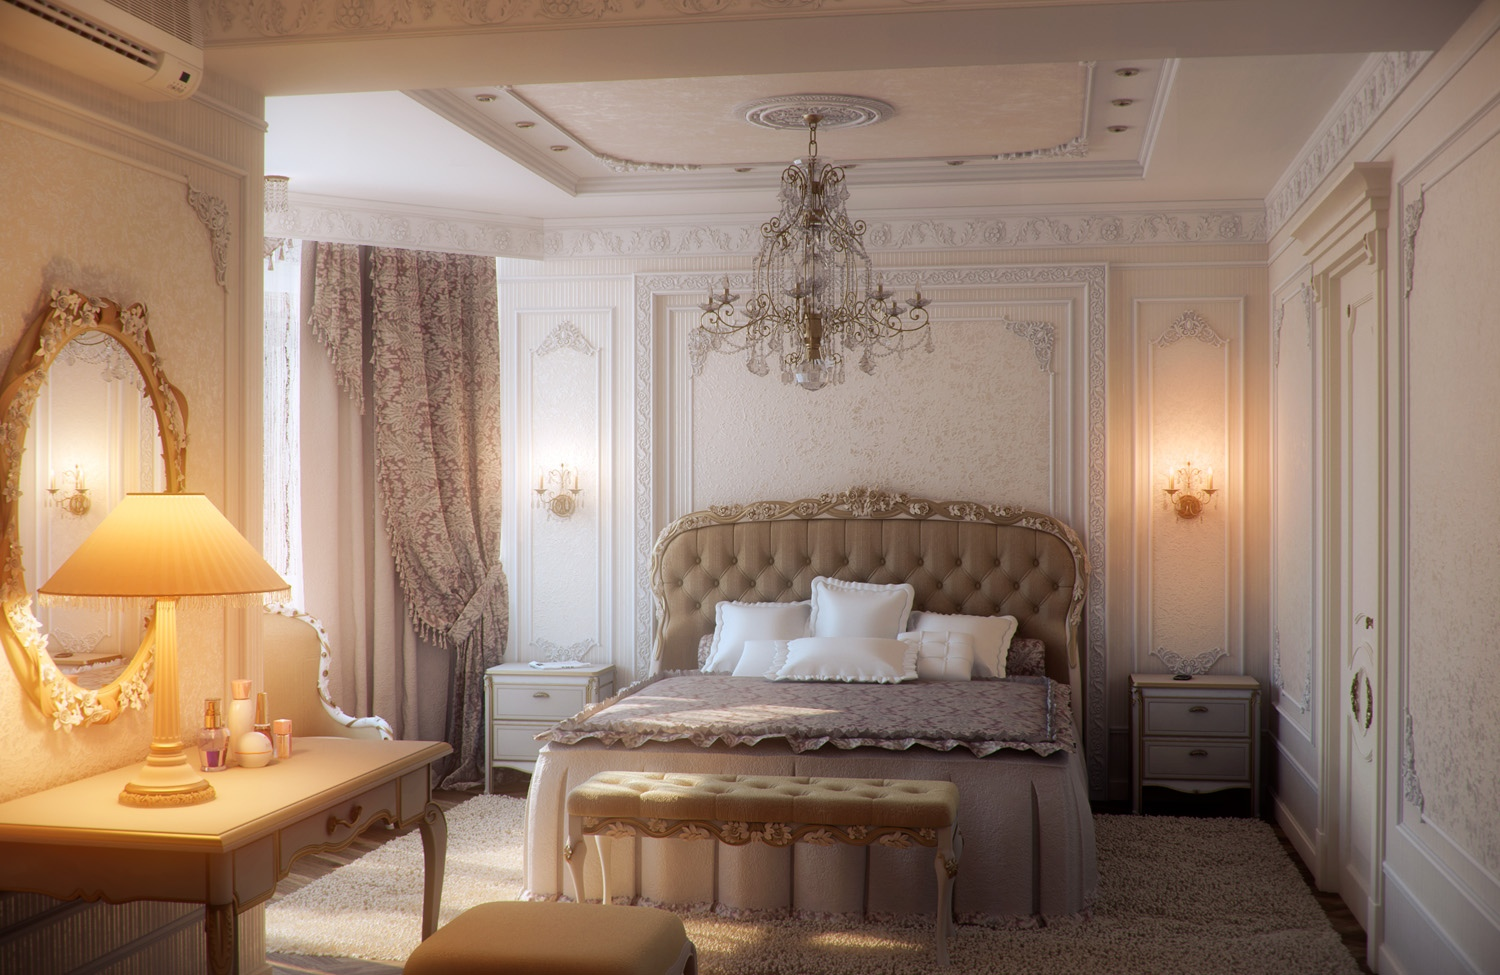 Bedrooms with traditional elegance for Full home interior design